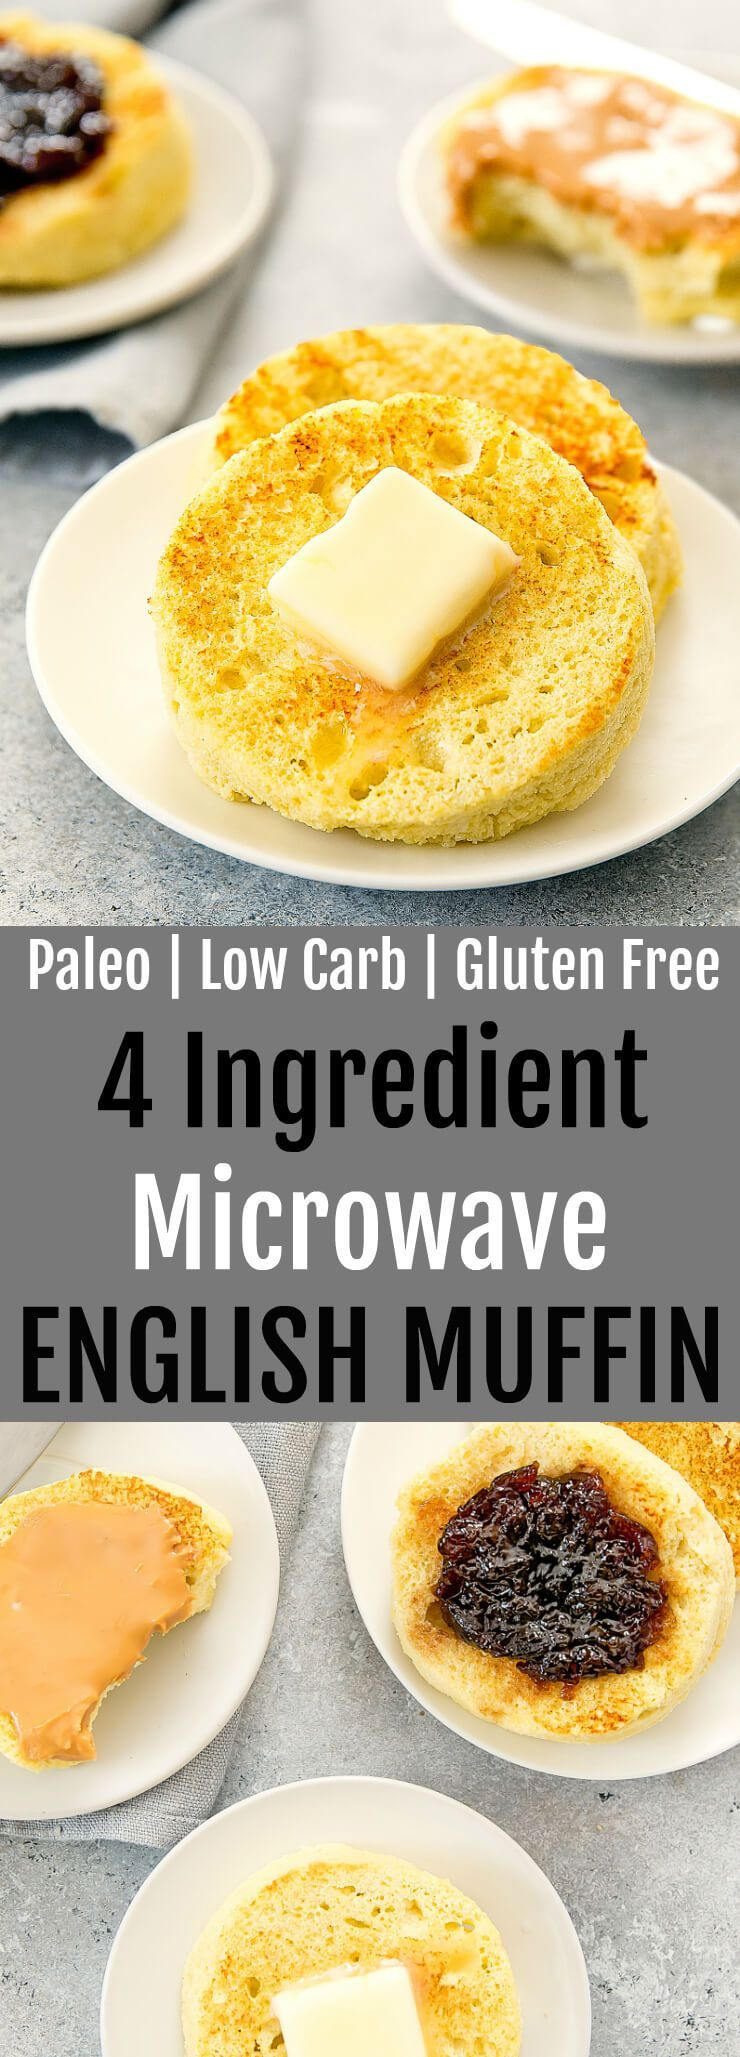 Photo of 4 Ingrédients Micro-ondes Paleo Low Carb English Muffin